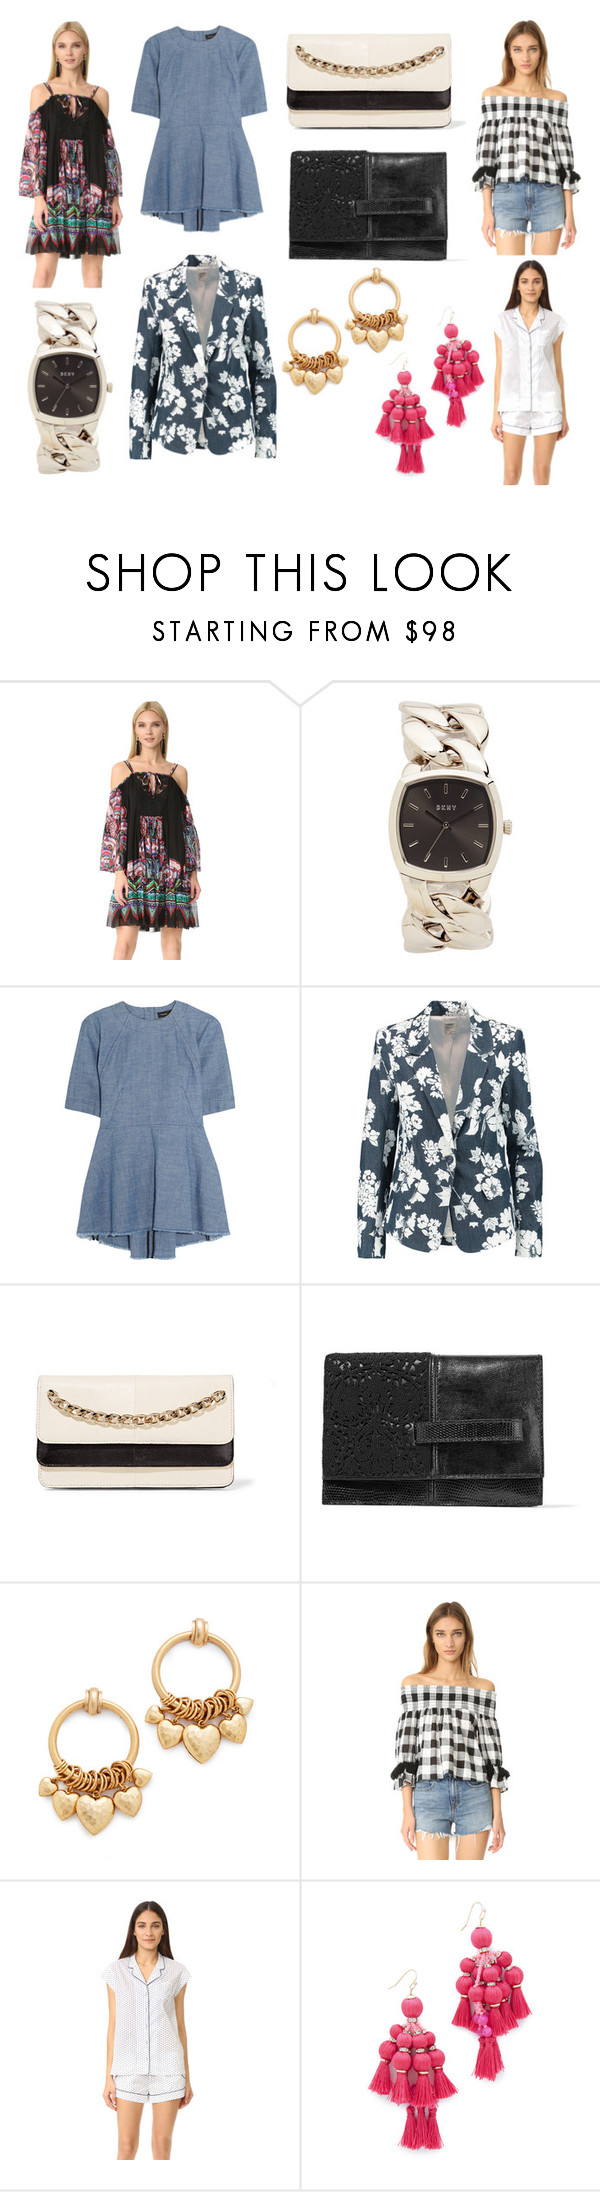 """""""Support Fashion"""" by donna-wang1 ❤ liked on Polyvore featuring Roberto Cavalli, DKNY, Proenza Schouler, L'Agence, Valentino, Elizabeth Cole, Misa, Three J NYC and Kate Spade"""